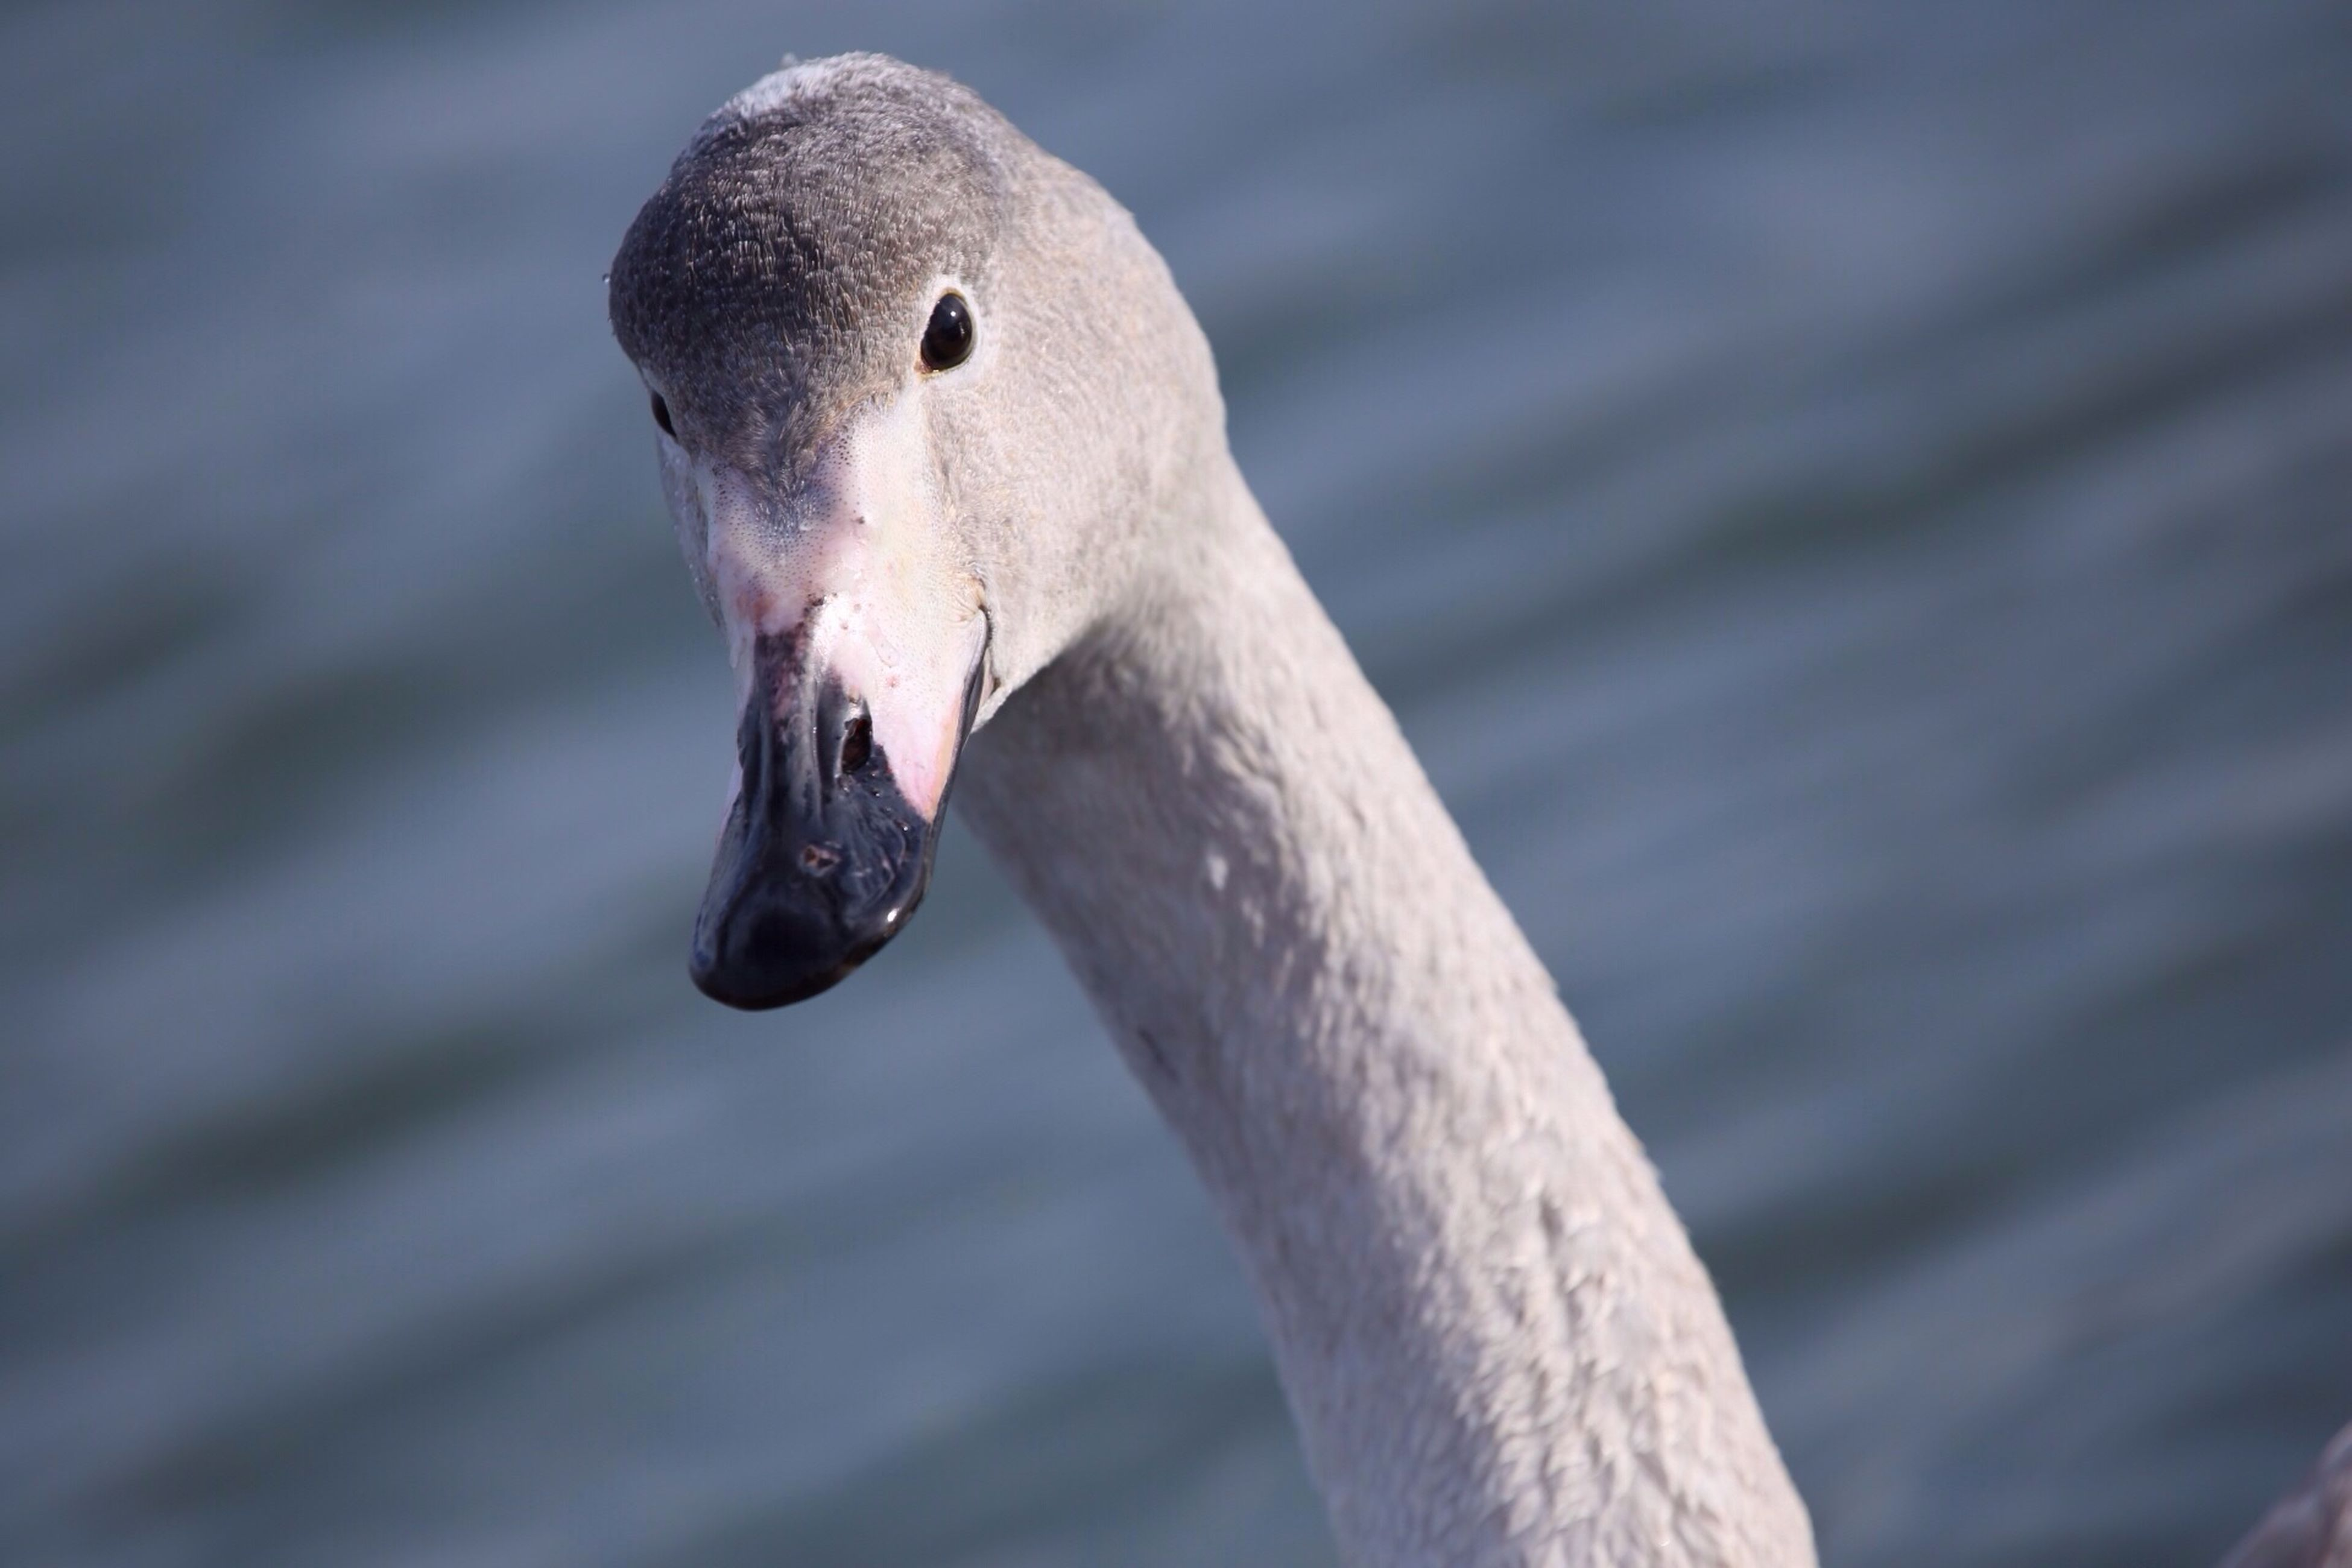 bird, animal themes, animals in the wild, wildlife, one animal, beak, water, swan, focus on foreground, lake, close-up, nature, white color, water bird, swimming, side view, outdoors, day, animal head